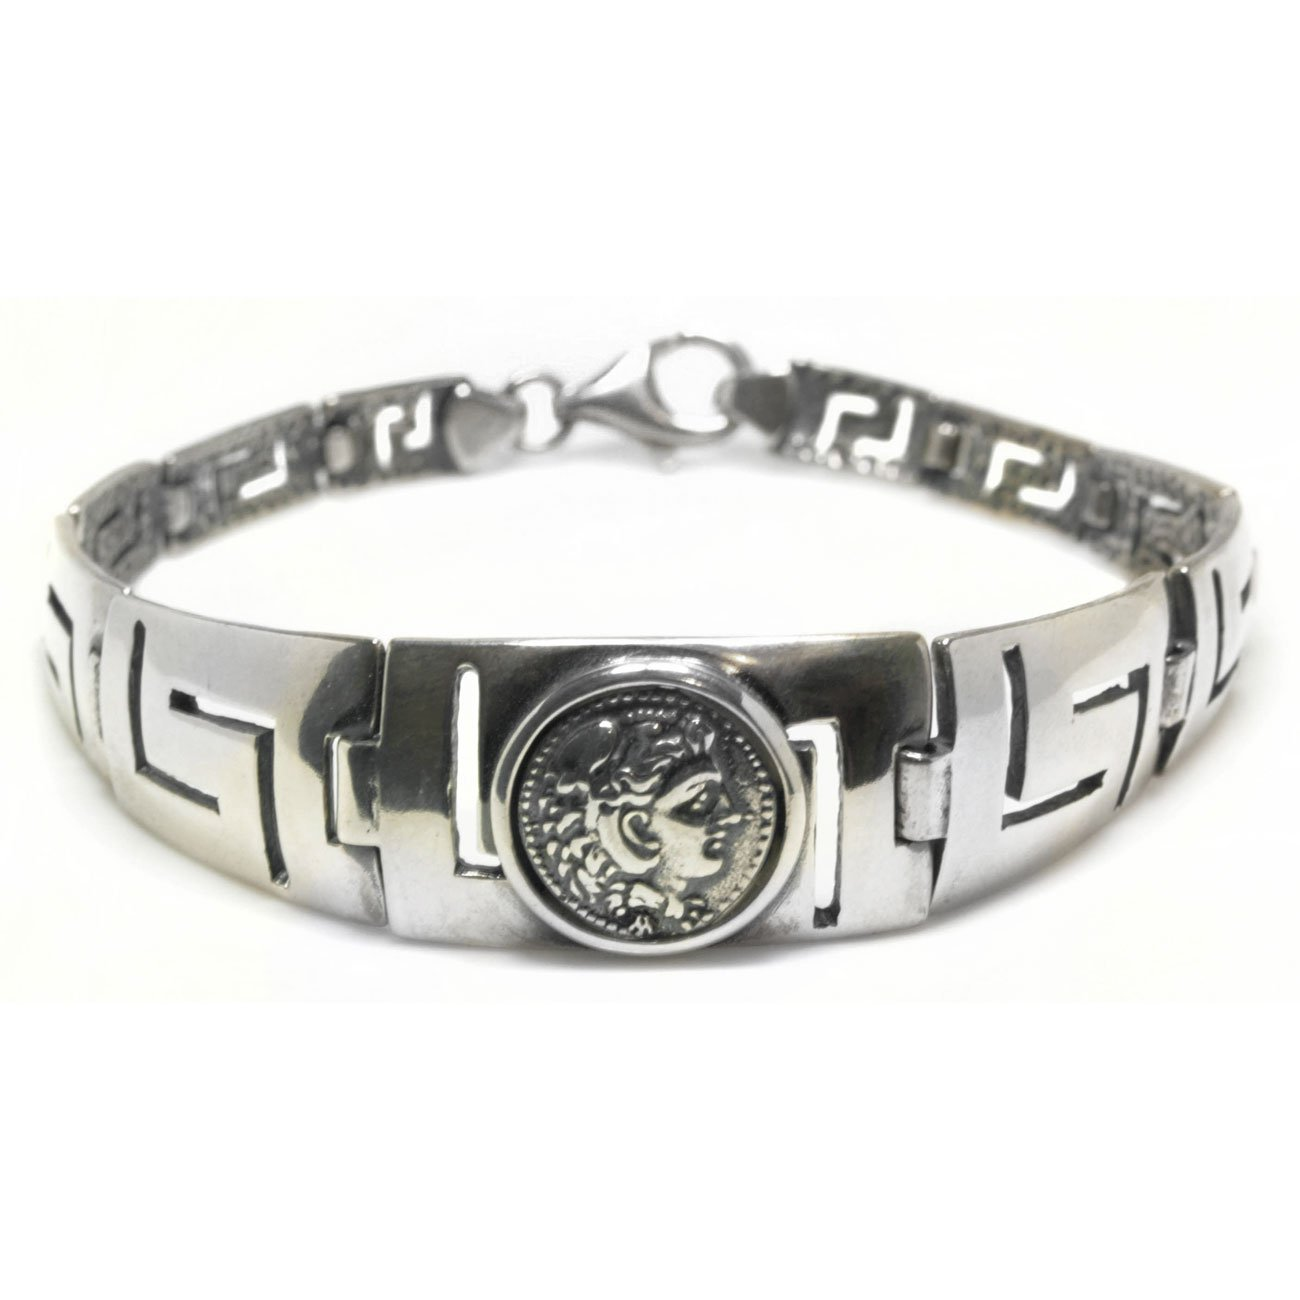 Hercules - Ancient Greek Erythrai Drachma Coin & Meander-Sterling Silver Bracelet